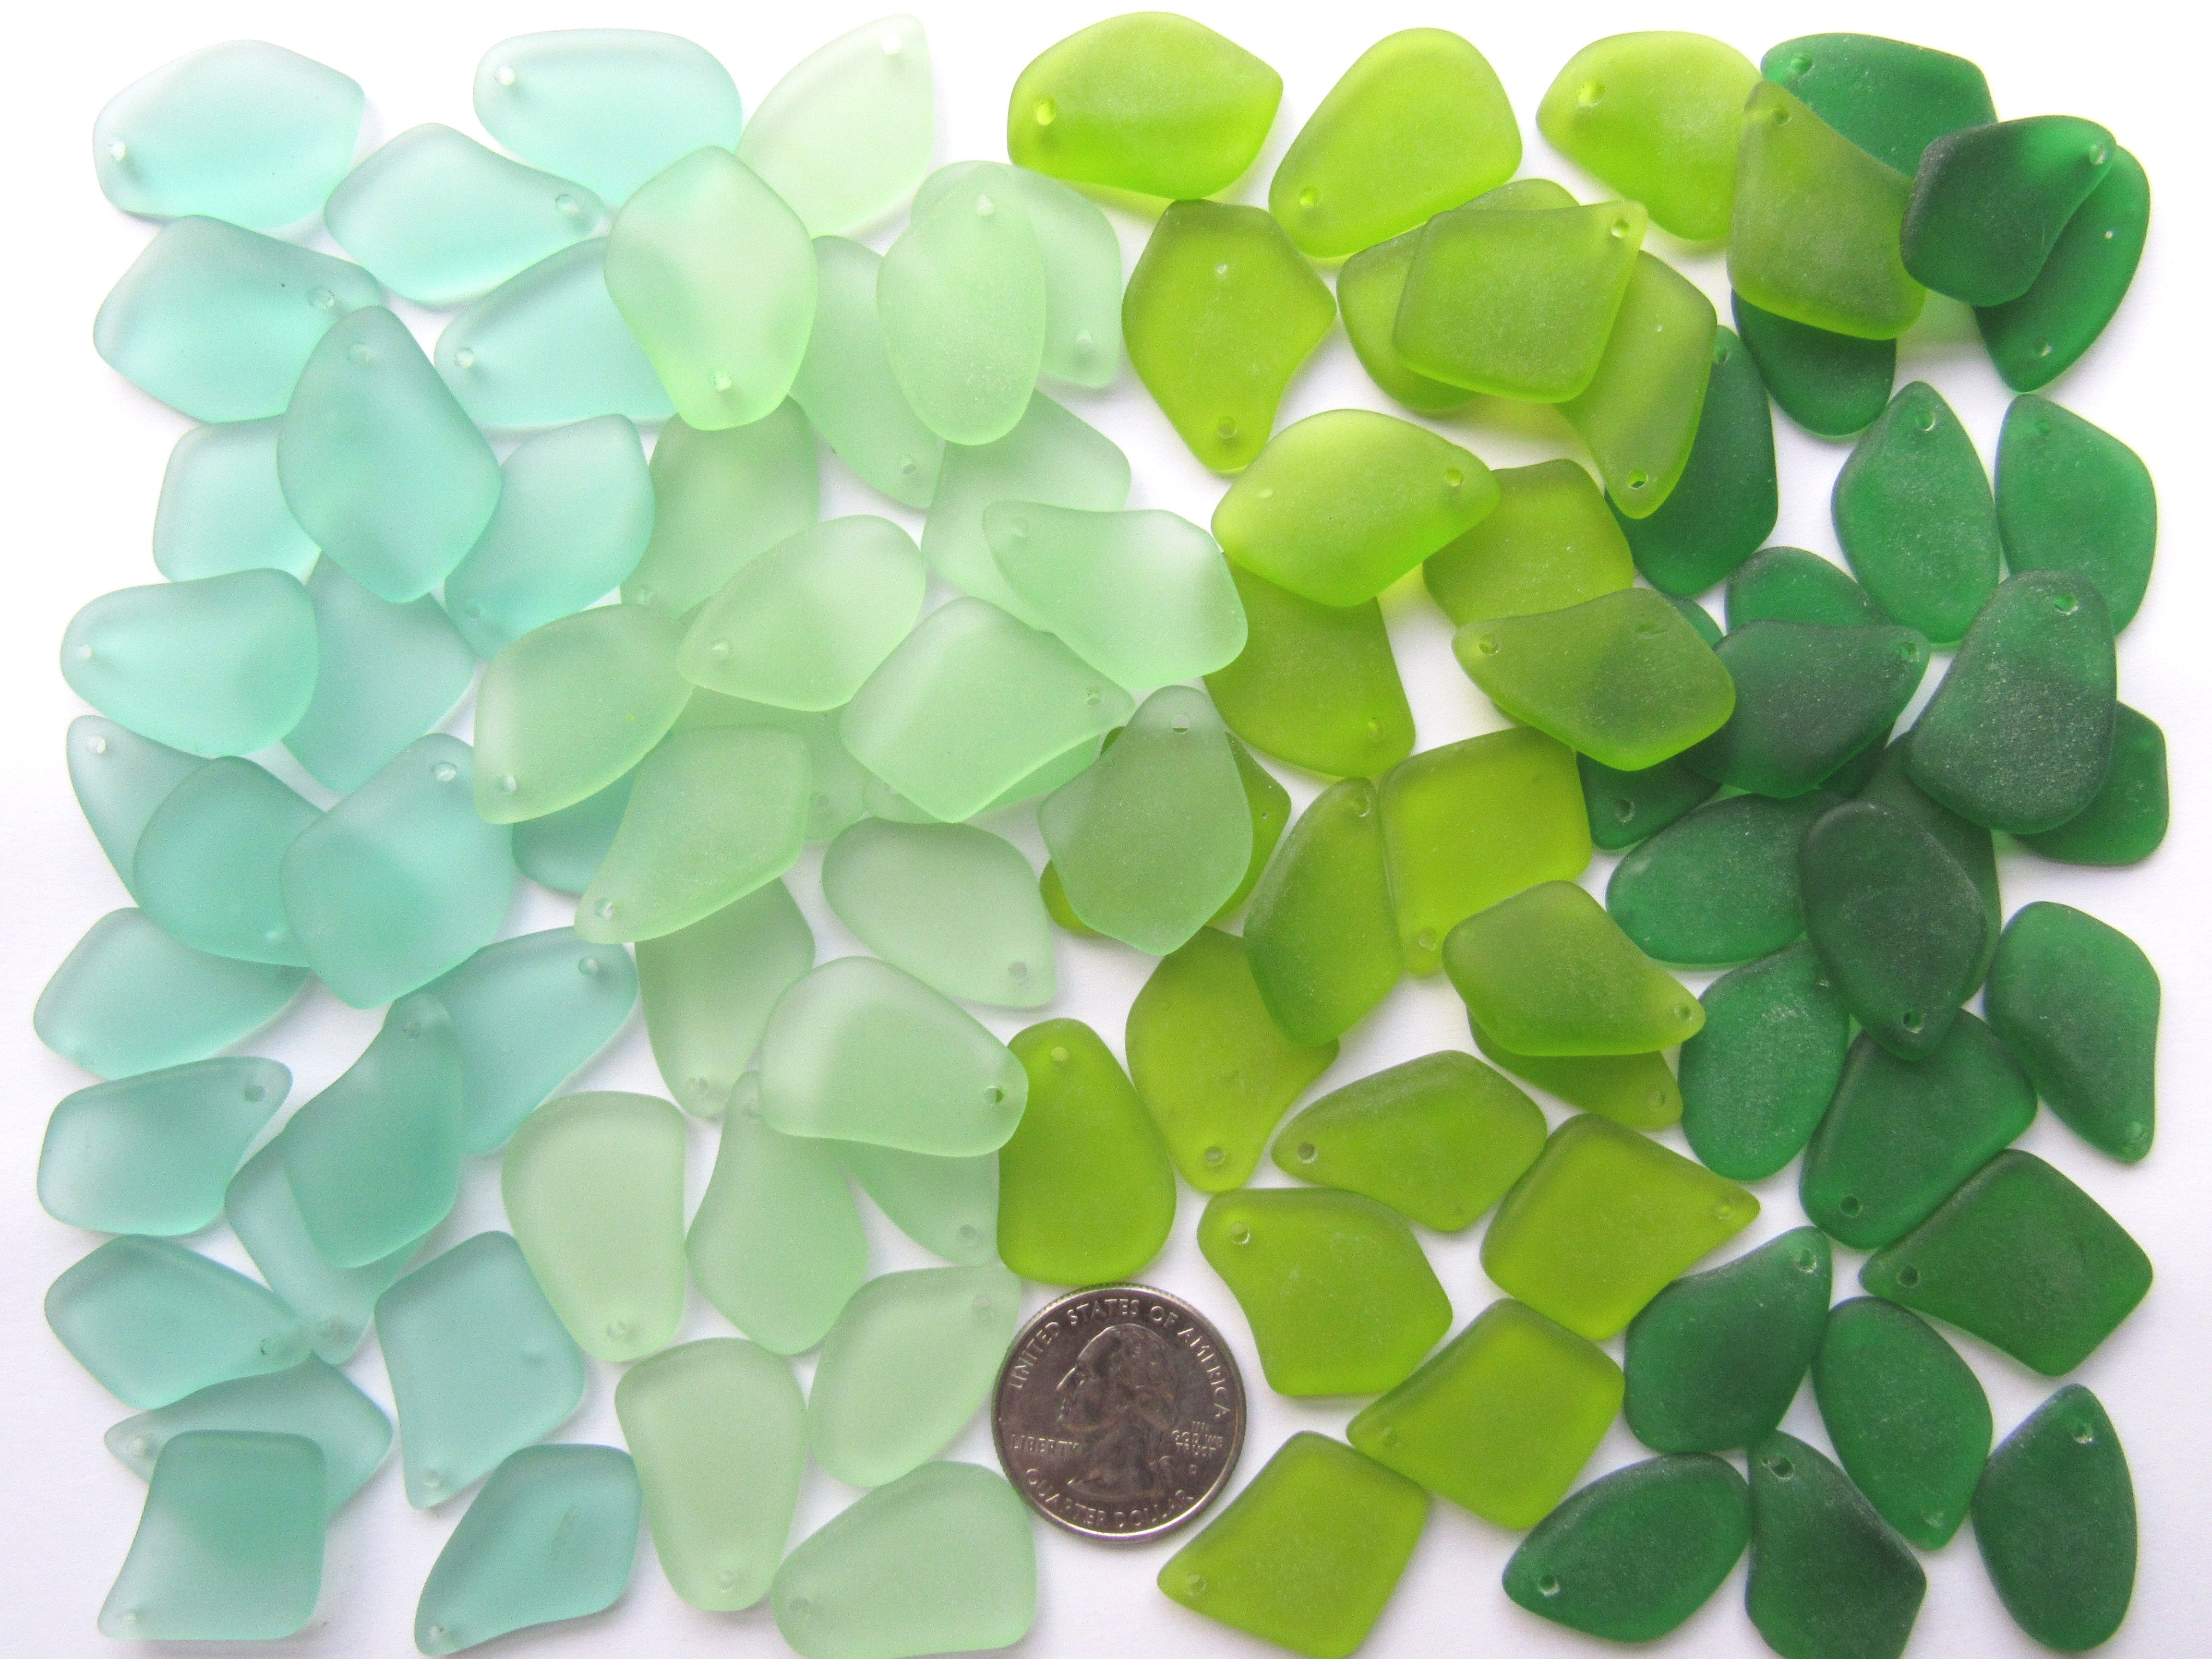 Bead Supply Cultured Sea Glass BEADS 18x6mm Teardrop length drilled frosted assorted strands for making jewelry